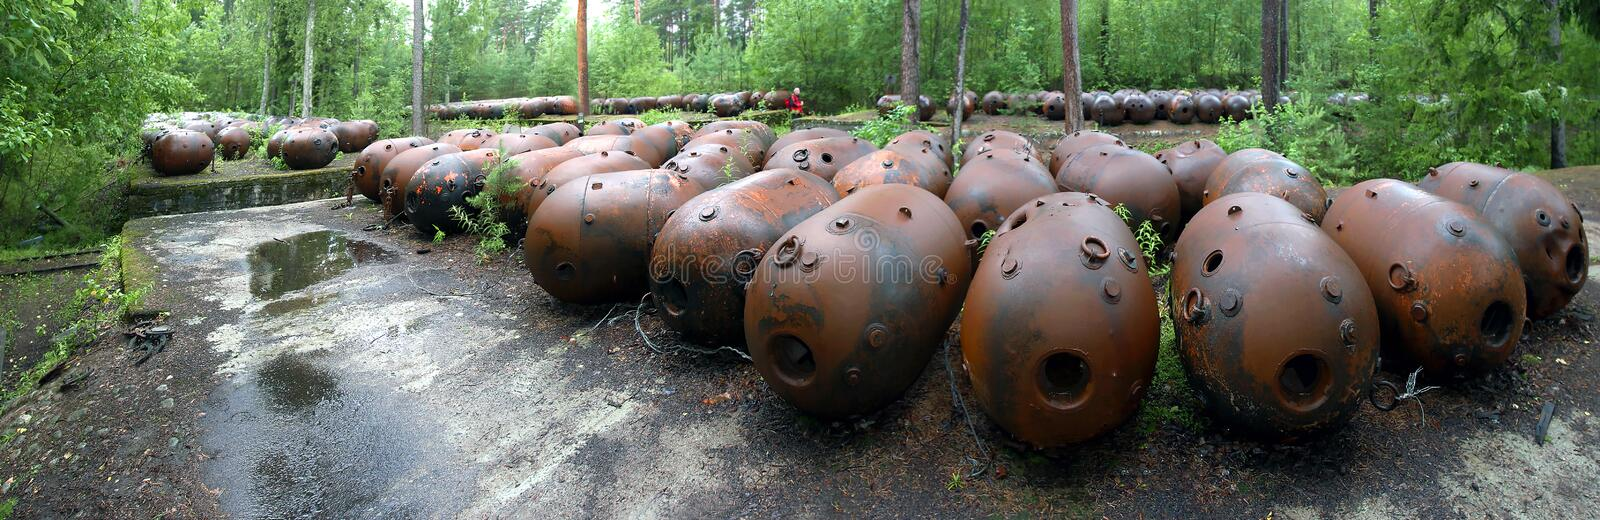 Download Sea mines in forest stock image. Image of race, minefield - 23597199